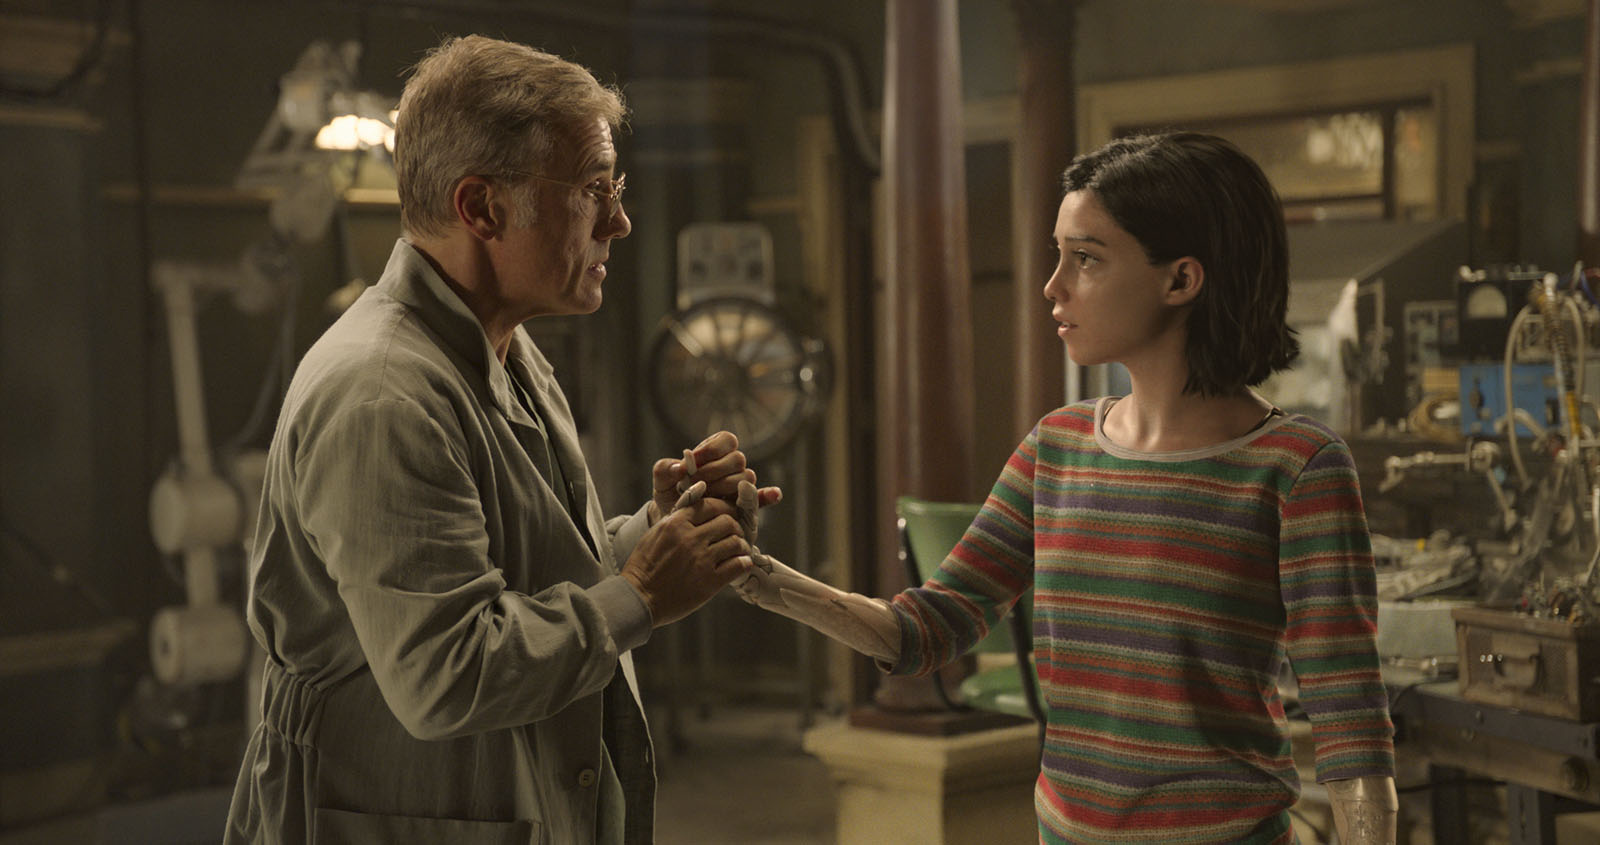 Christpoh Waltz as Dr. Dyson Ido talking to Alita in Alita Battle Angel